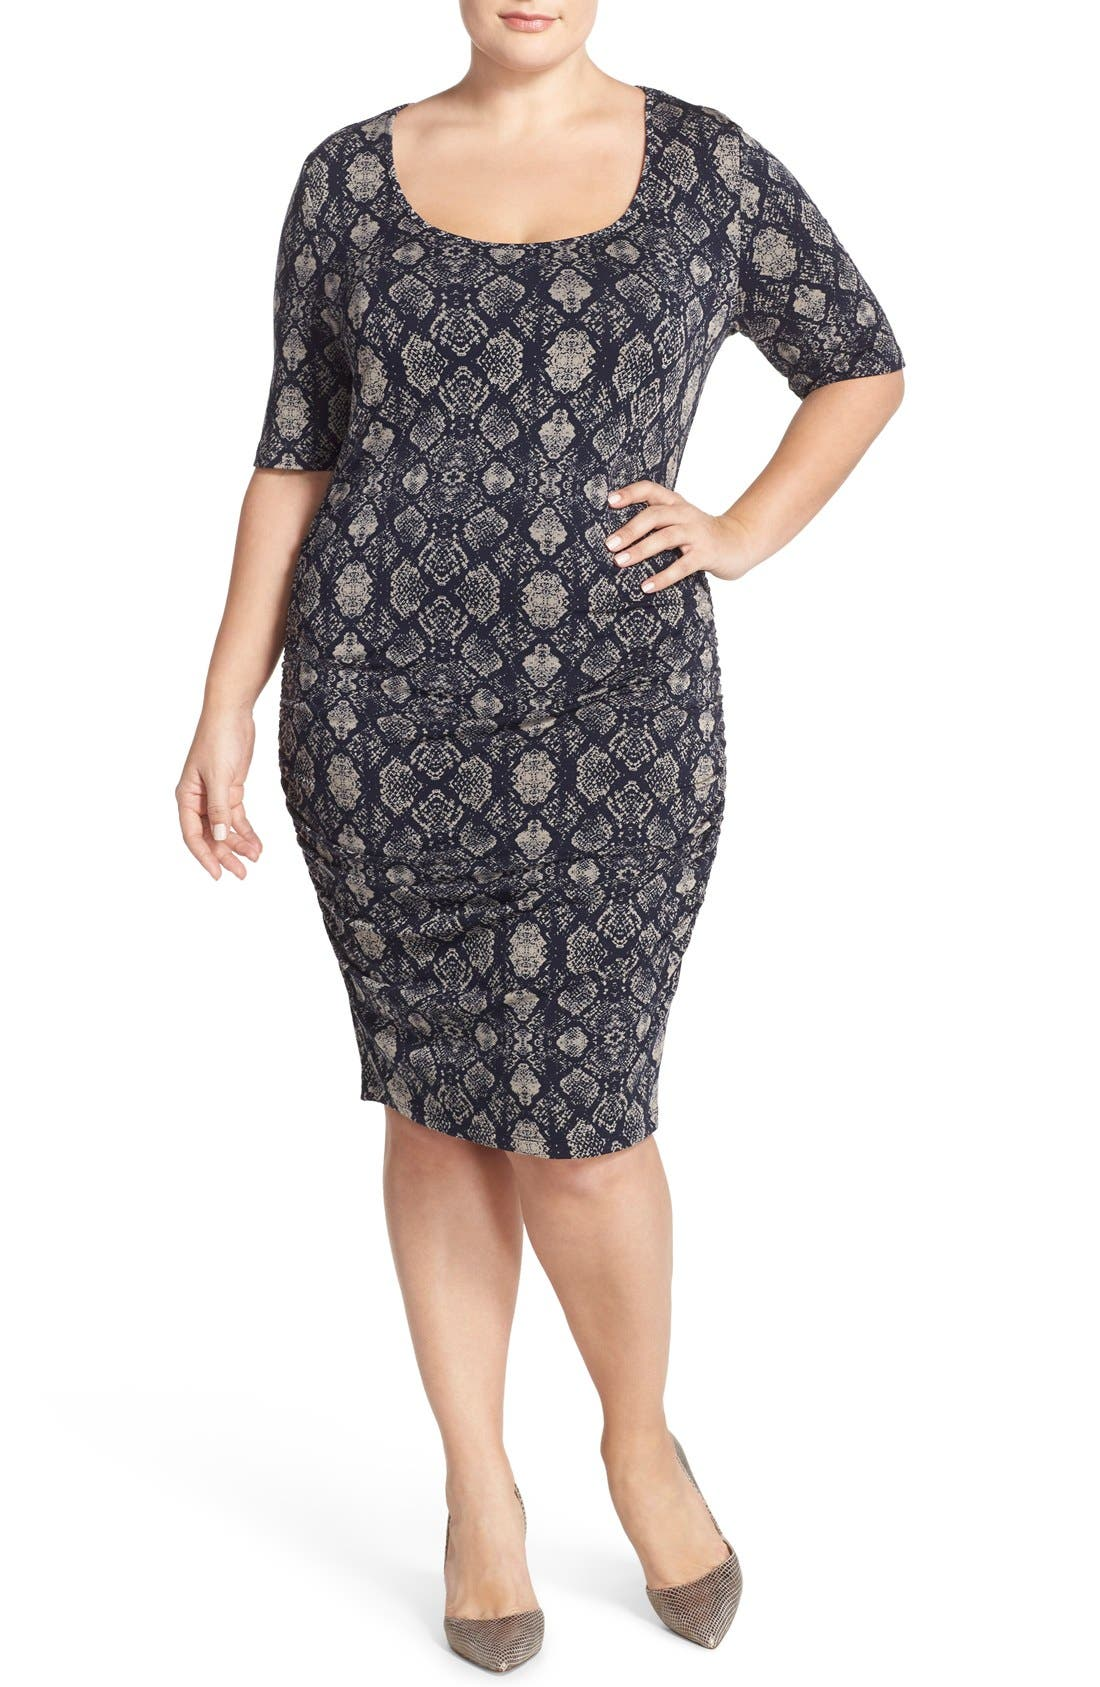 TART 'Jasmin' Back Cutout Snakeskin Print French Terry Body-Con Dress in Graphic Python